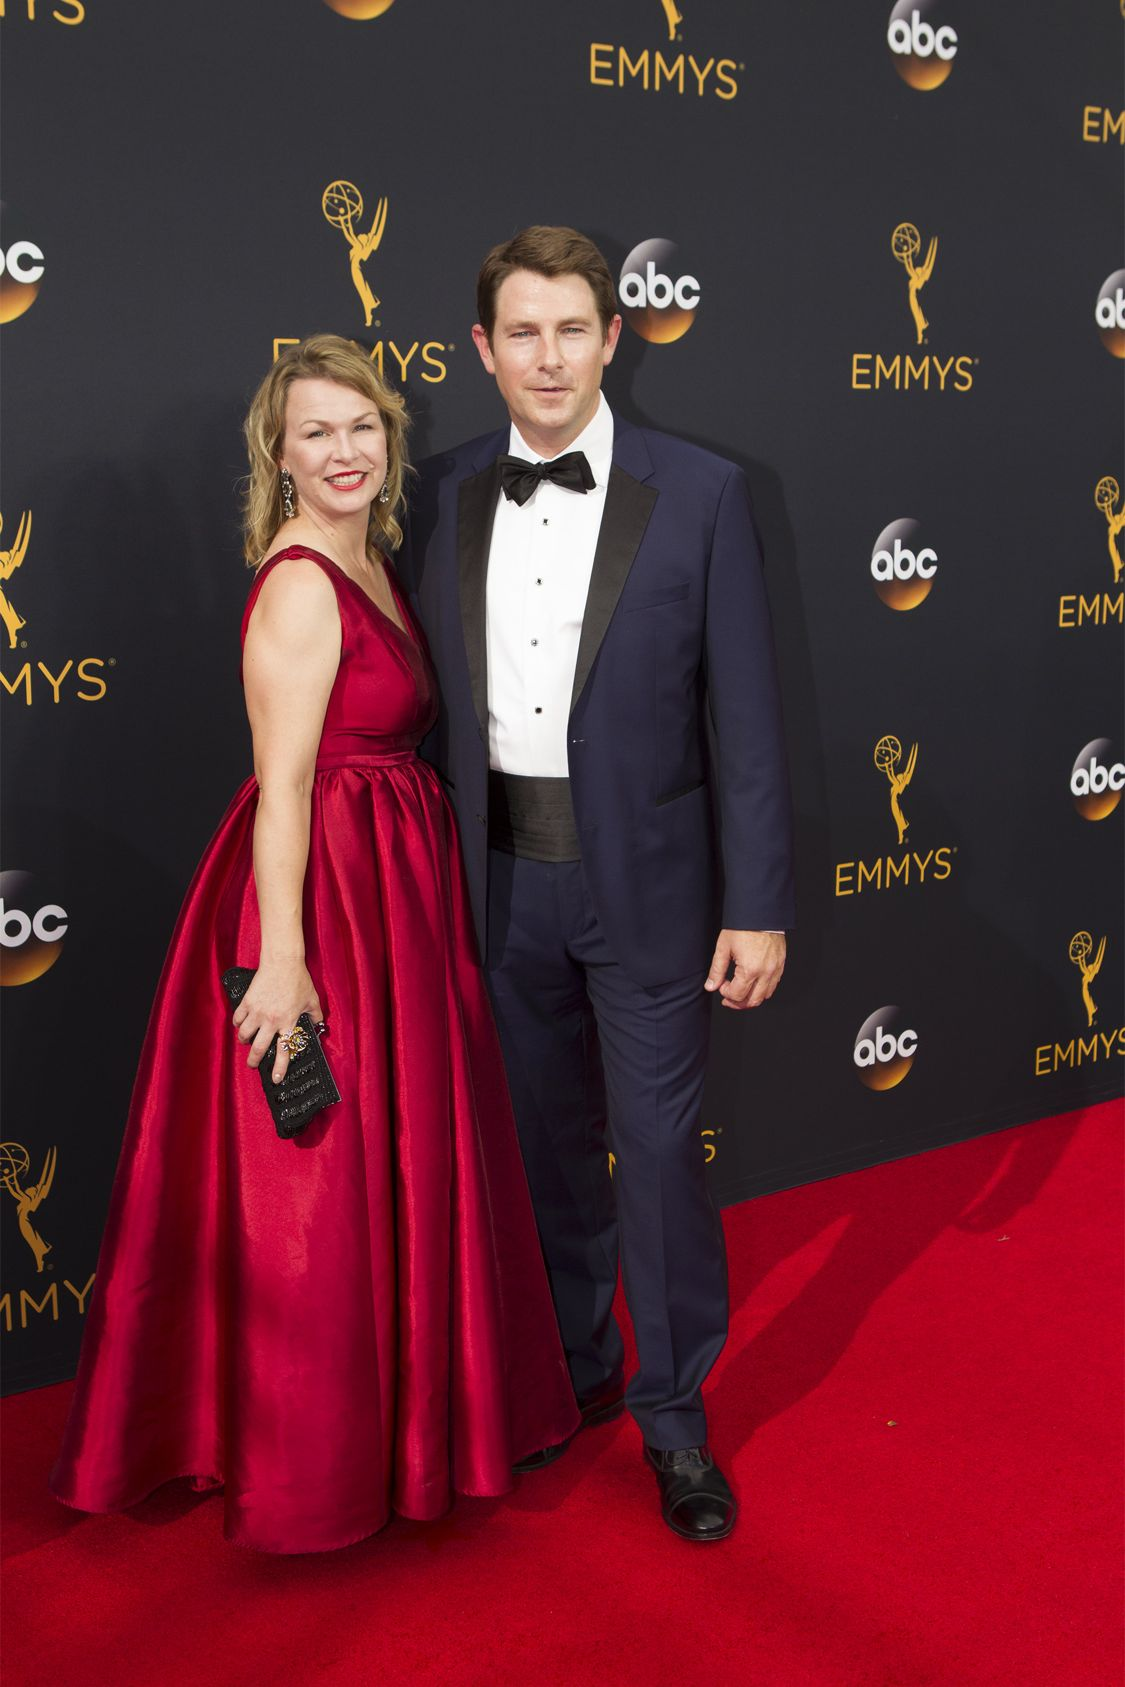 """THE 68TH EMMY(r) AWARDS - """"The 68th Emmy Awards"""" broadcasts live from The Microsoft Theater in Los Angeles, Sunday, September 18 (7:00-11:00 p.m. EDT/4:00-8:00 p.m. PDT), on ABC and is hosted by Jimmy Kimmel. (ABC/Rick Rowell) DEREK CECIL"""